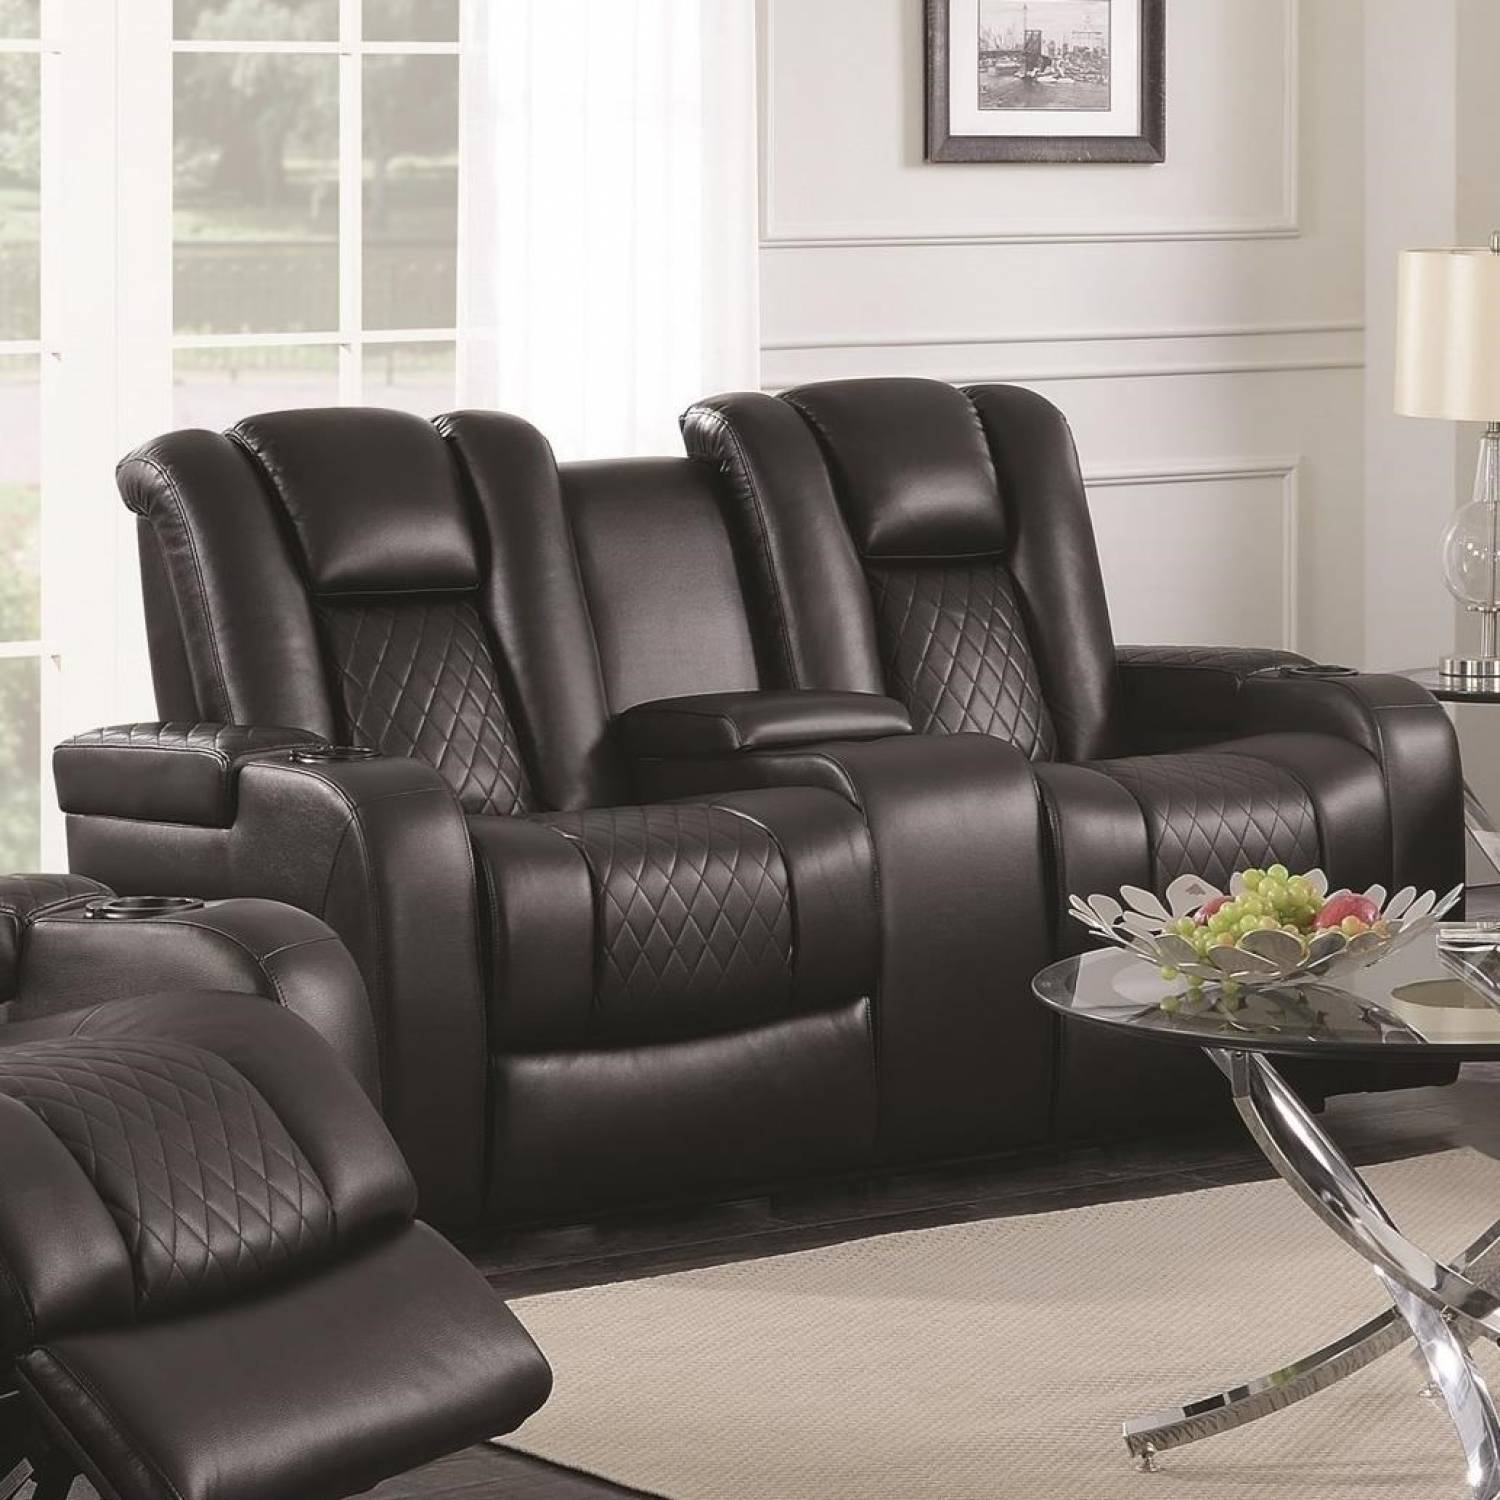 Delangelo Casual Power Reclining Love Seat With Cup Holders Storage  Console And USB Port Recliner Cup Holder Storage D88